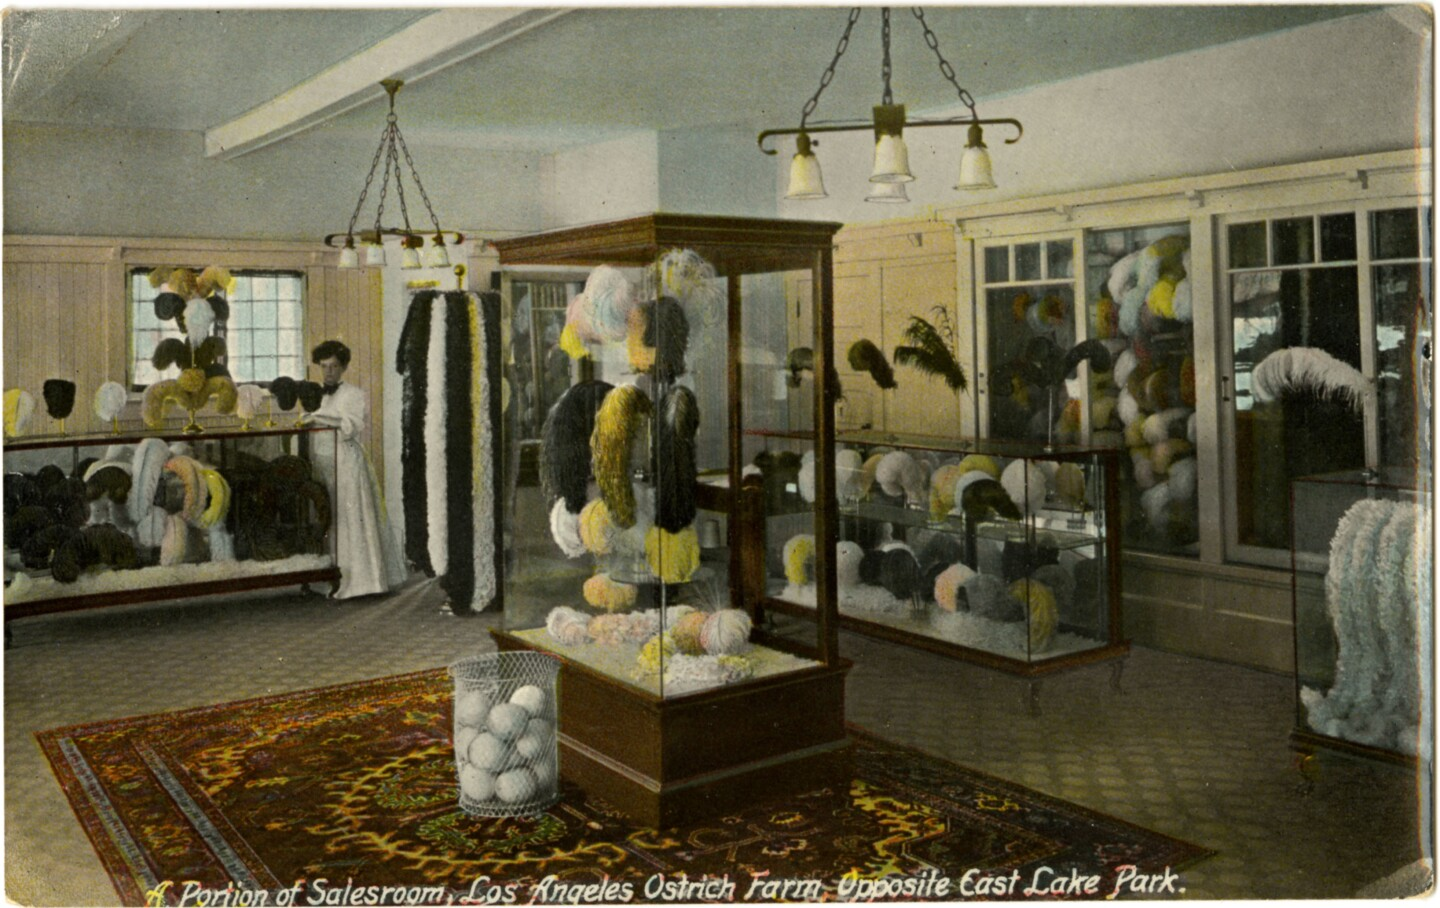 Gift shop receipts augmented the farms' admission fees. Circa 1910 postcard courtesy of the  Werner Von Boltenstern Postcard Collection, Department of Archives and Special Collections, William H. Hannon Library, Loyola Marymount University.